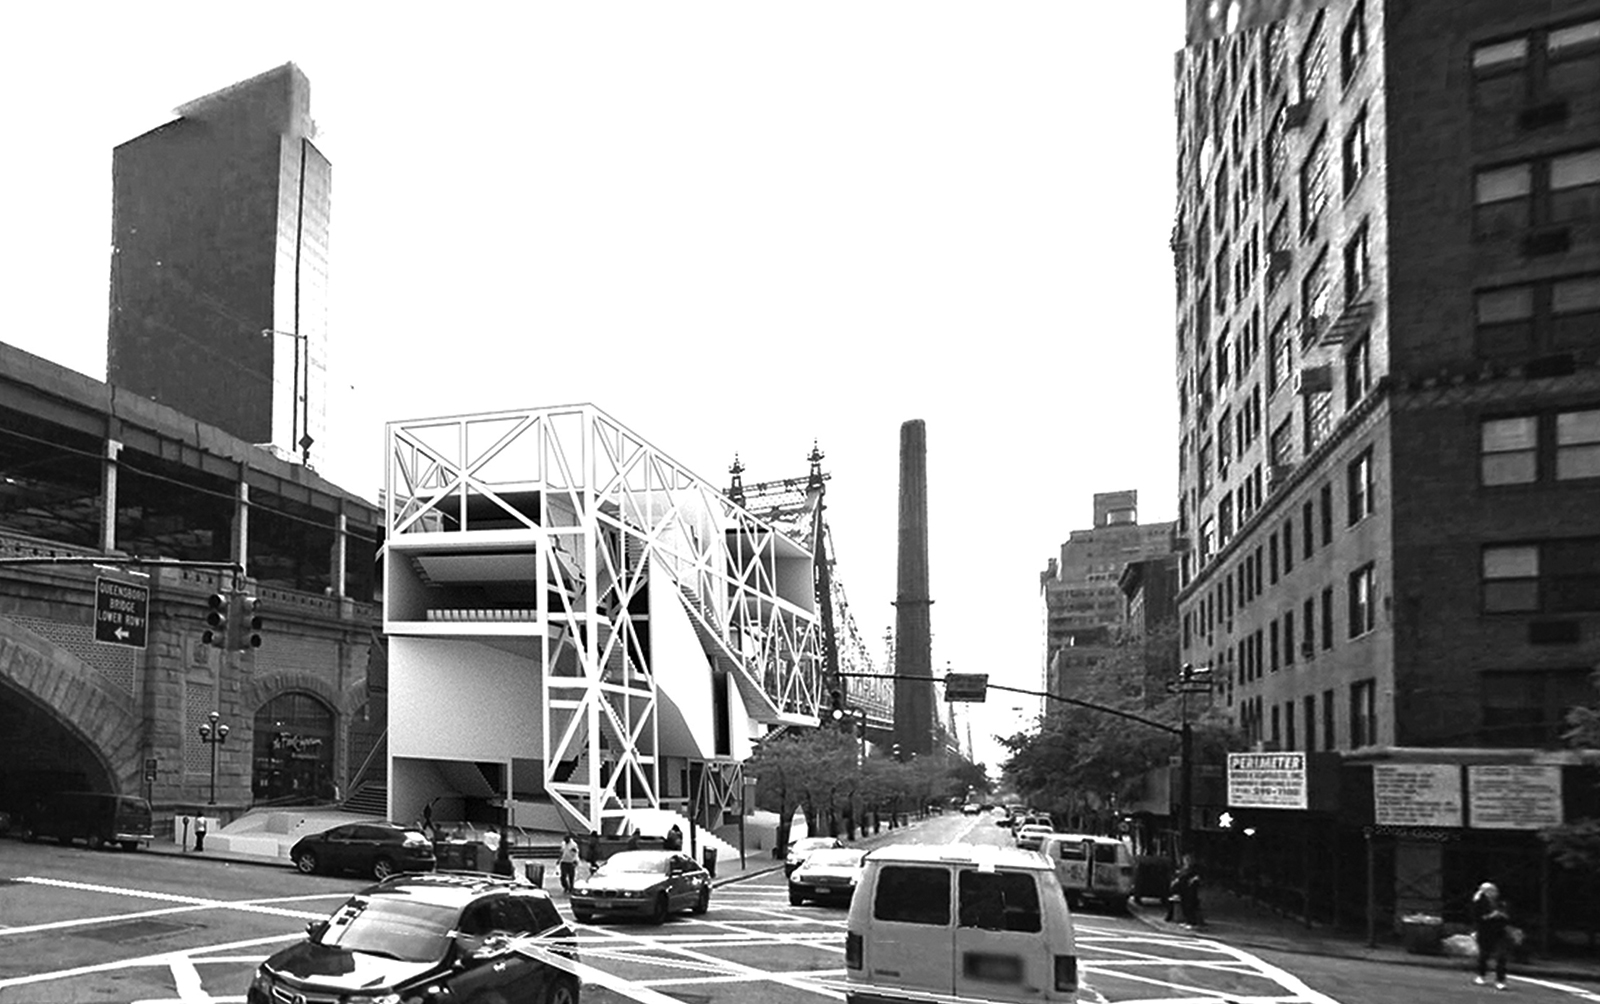 Perspective of the DM dance center from the street intersection showing the construction merging with the Queensboro Bridge